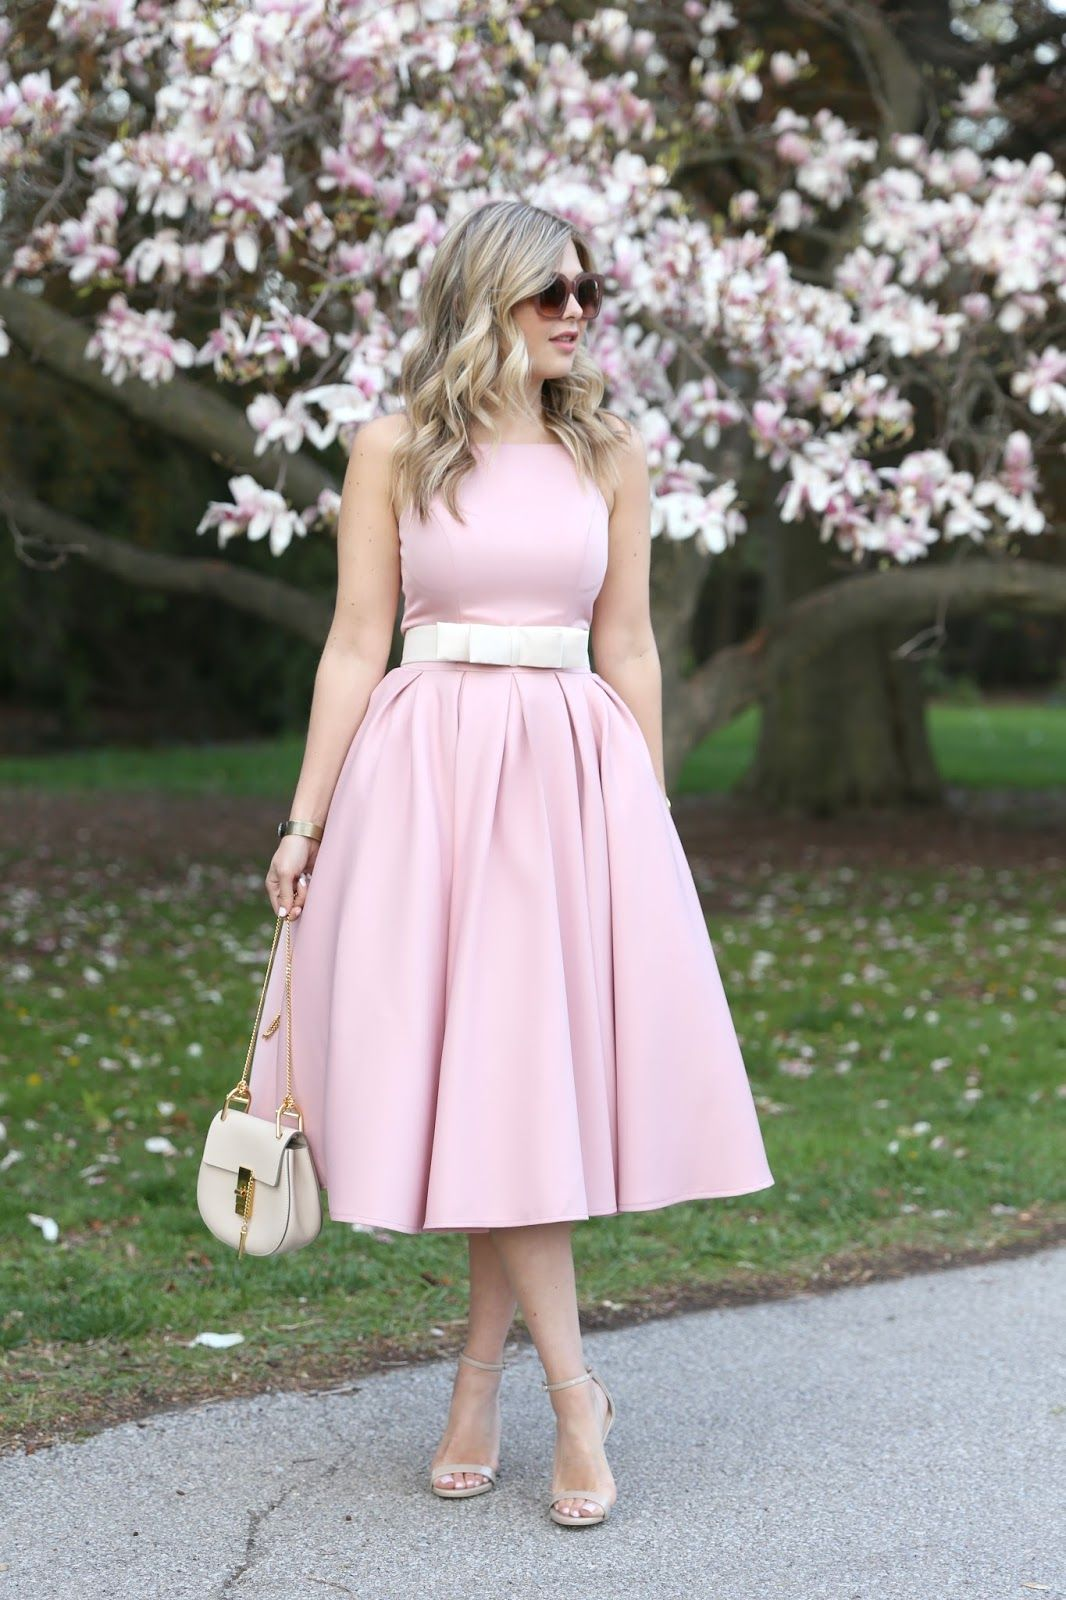 Millenial pink outfits | Fashion And Clothing · Find Your Style ...